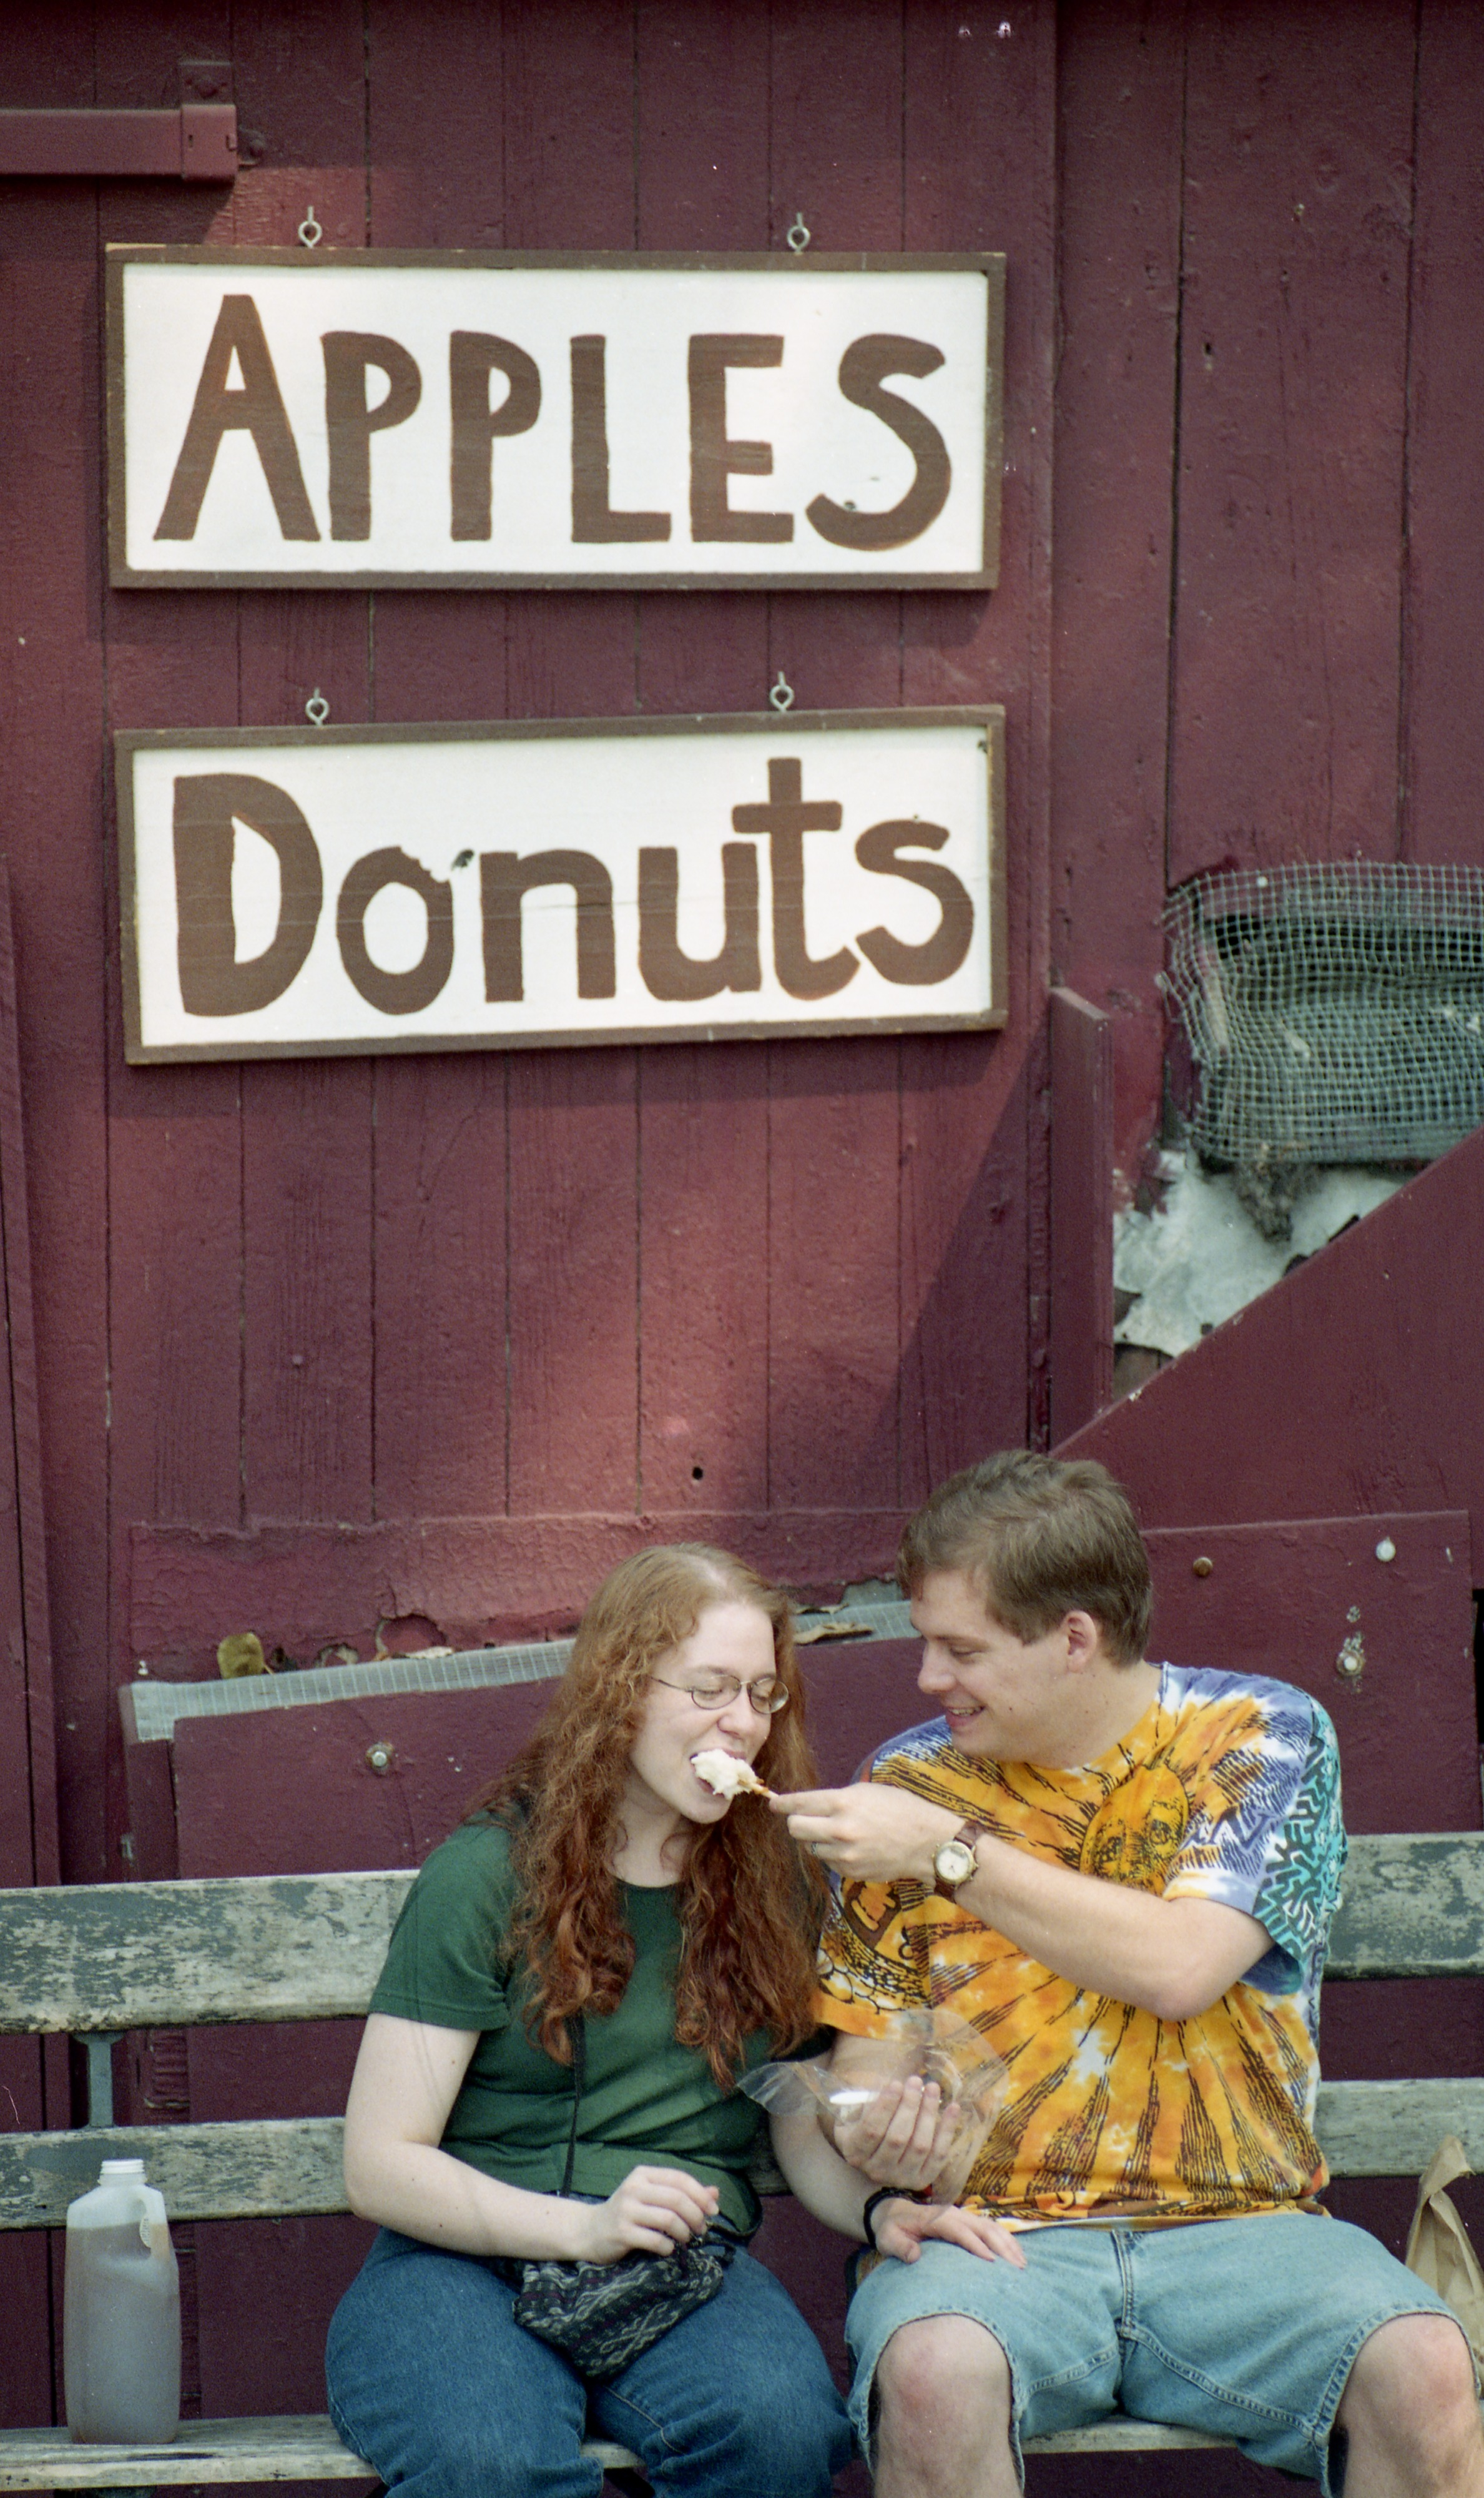 Alice Brown & Rob Russell Share A Caramel Apple At The Dexter Cider Mill, September 1998 image